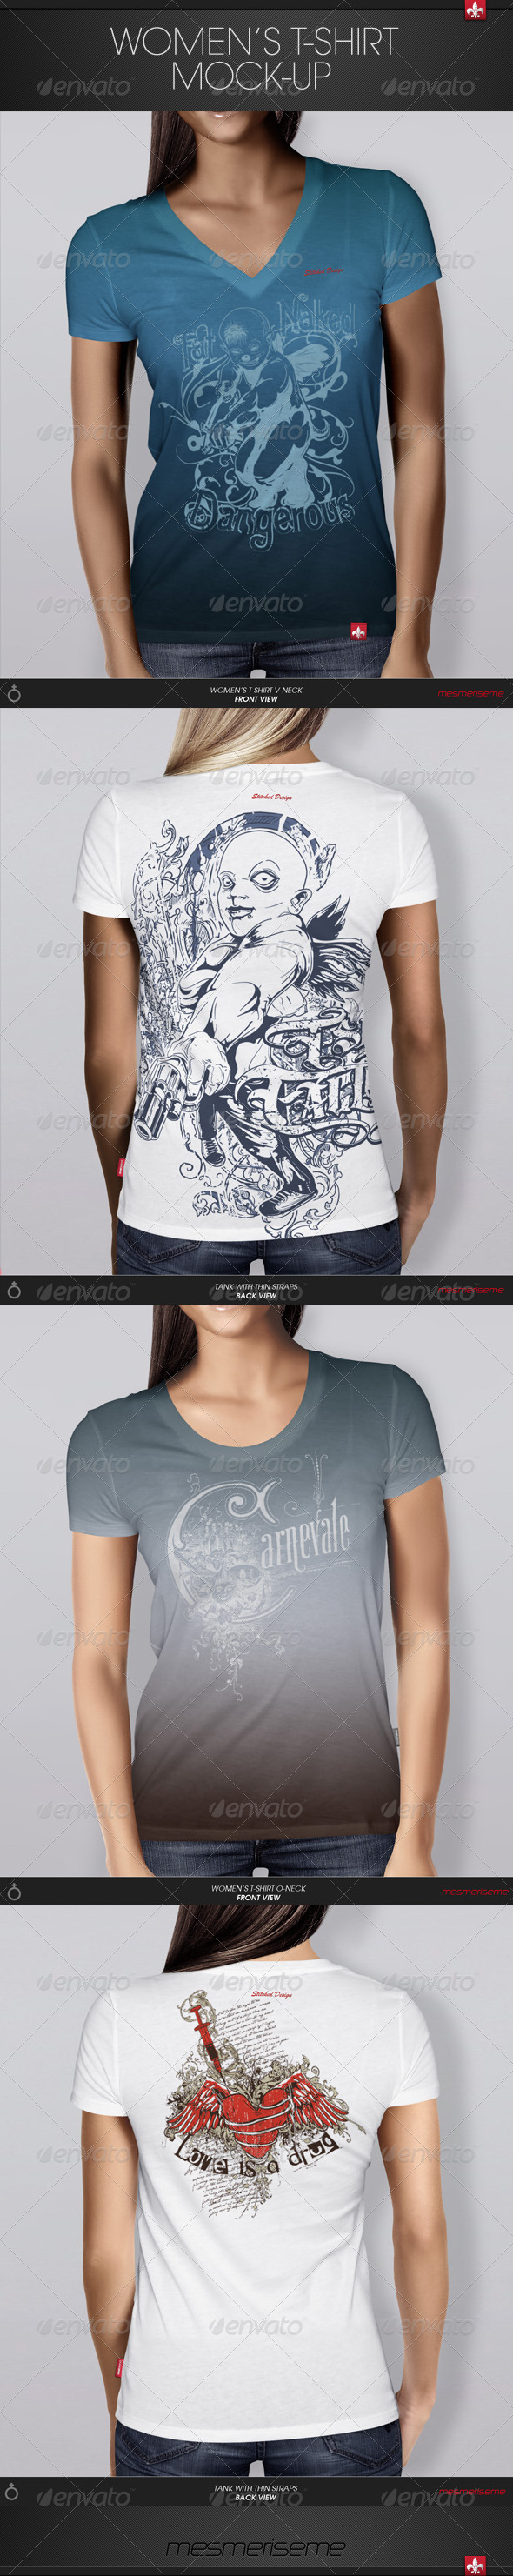 GraphicRiver Women s T-shirt Mock-up 6241229